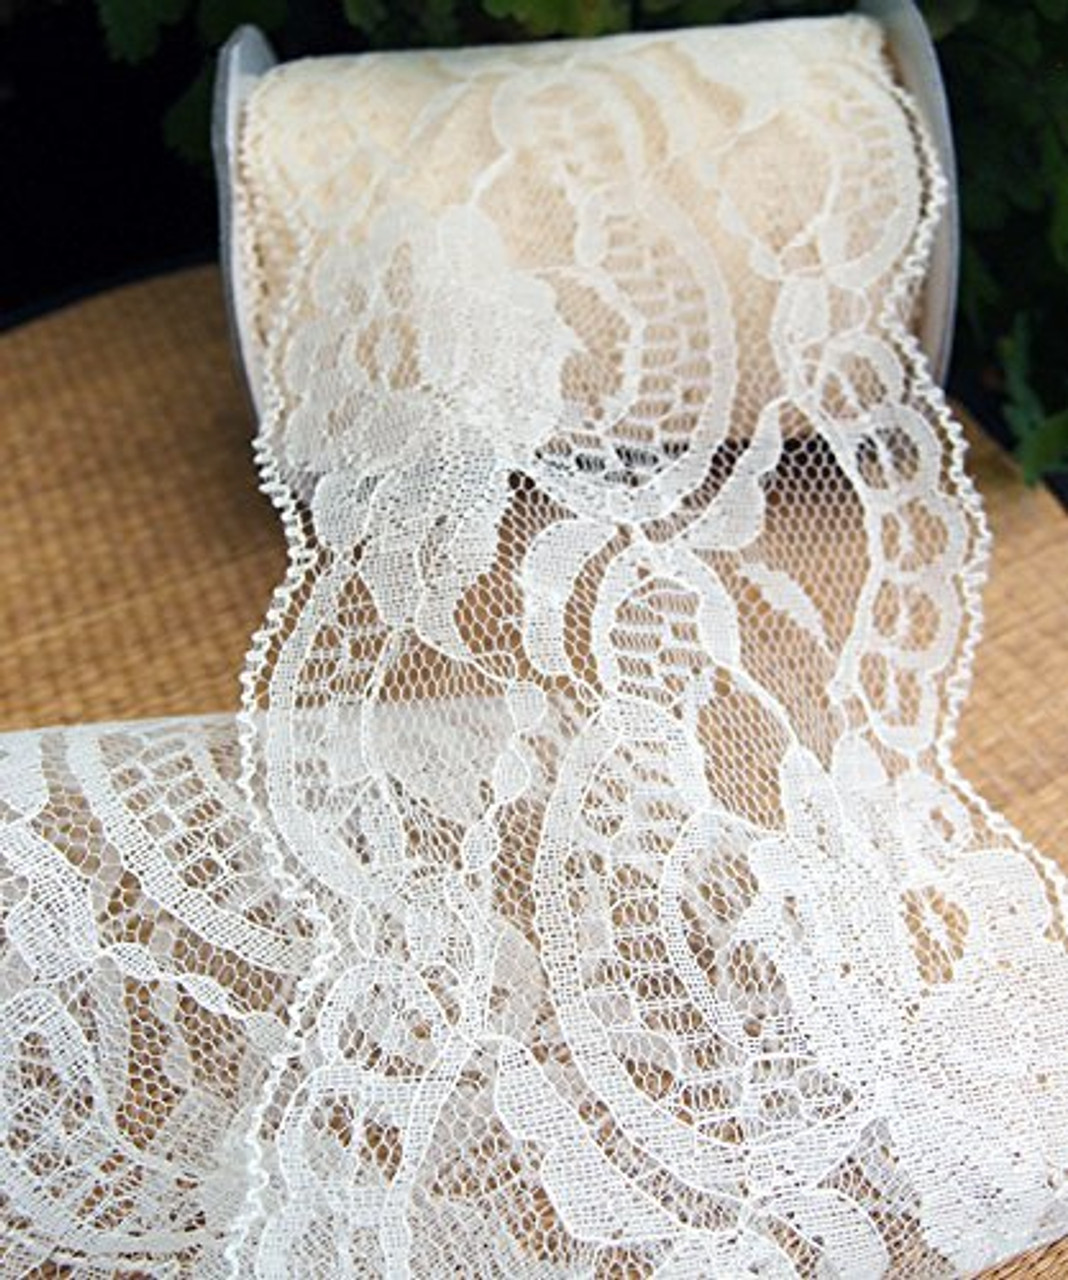 AK-Trading 1 wide x 25 yards Floral Pattern Lace Ribbon for Decorating Ivory Floral Designing and Crafts